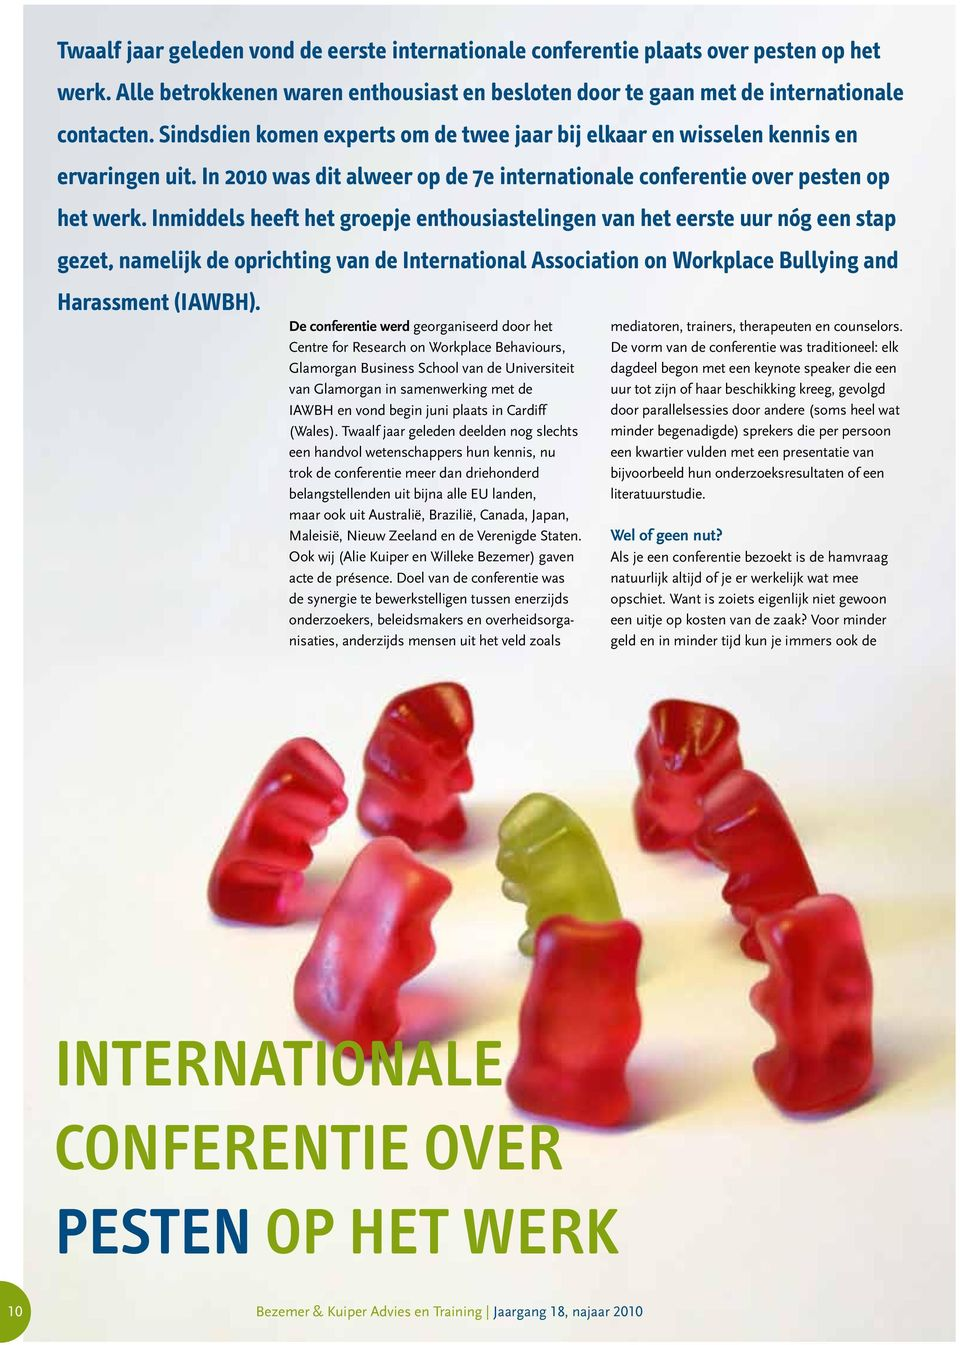 Inmiddels heeft het groepje enthousiastelingen van het eerste uur nóg een stap gezet, namelijk de oprichting van de International Association on Workplace Bullying and Harassment (IAWBH).